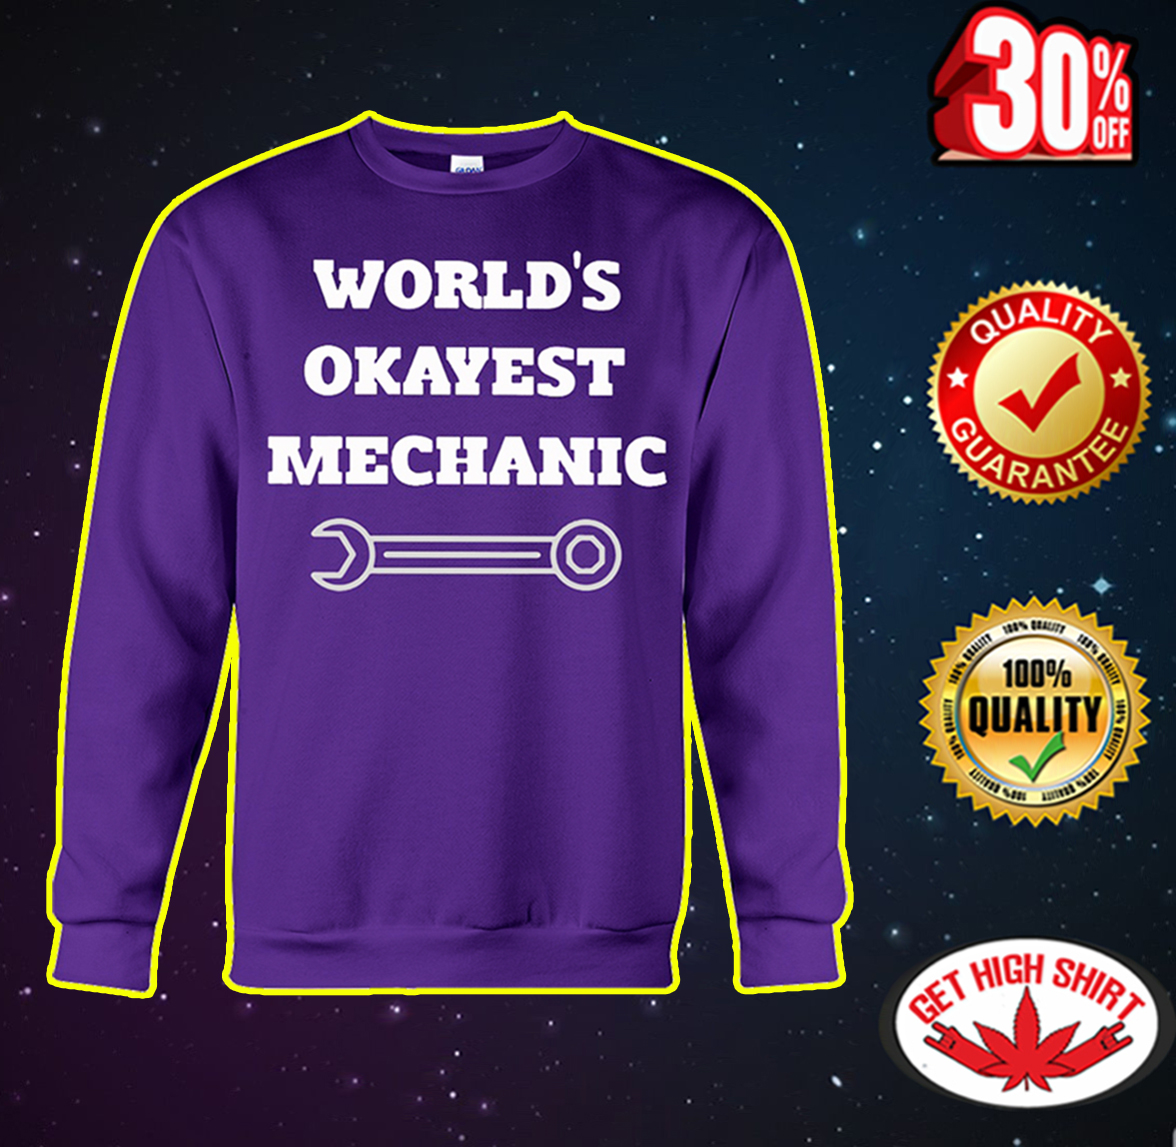 World's okayest mechanic sweatshirt